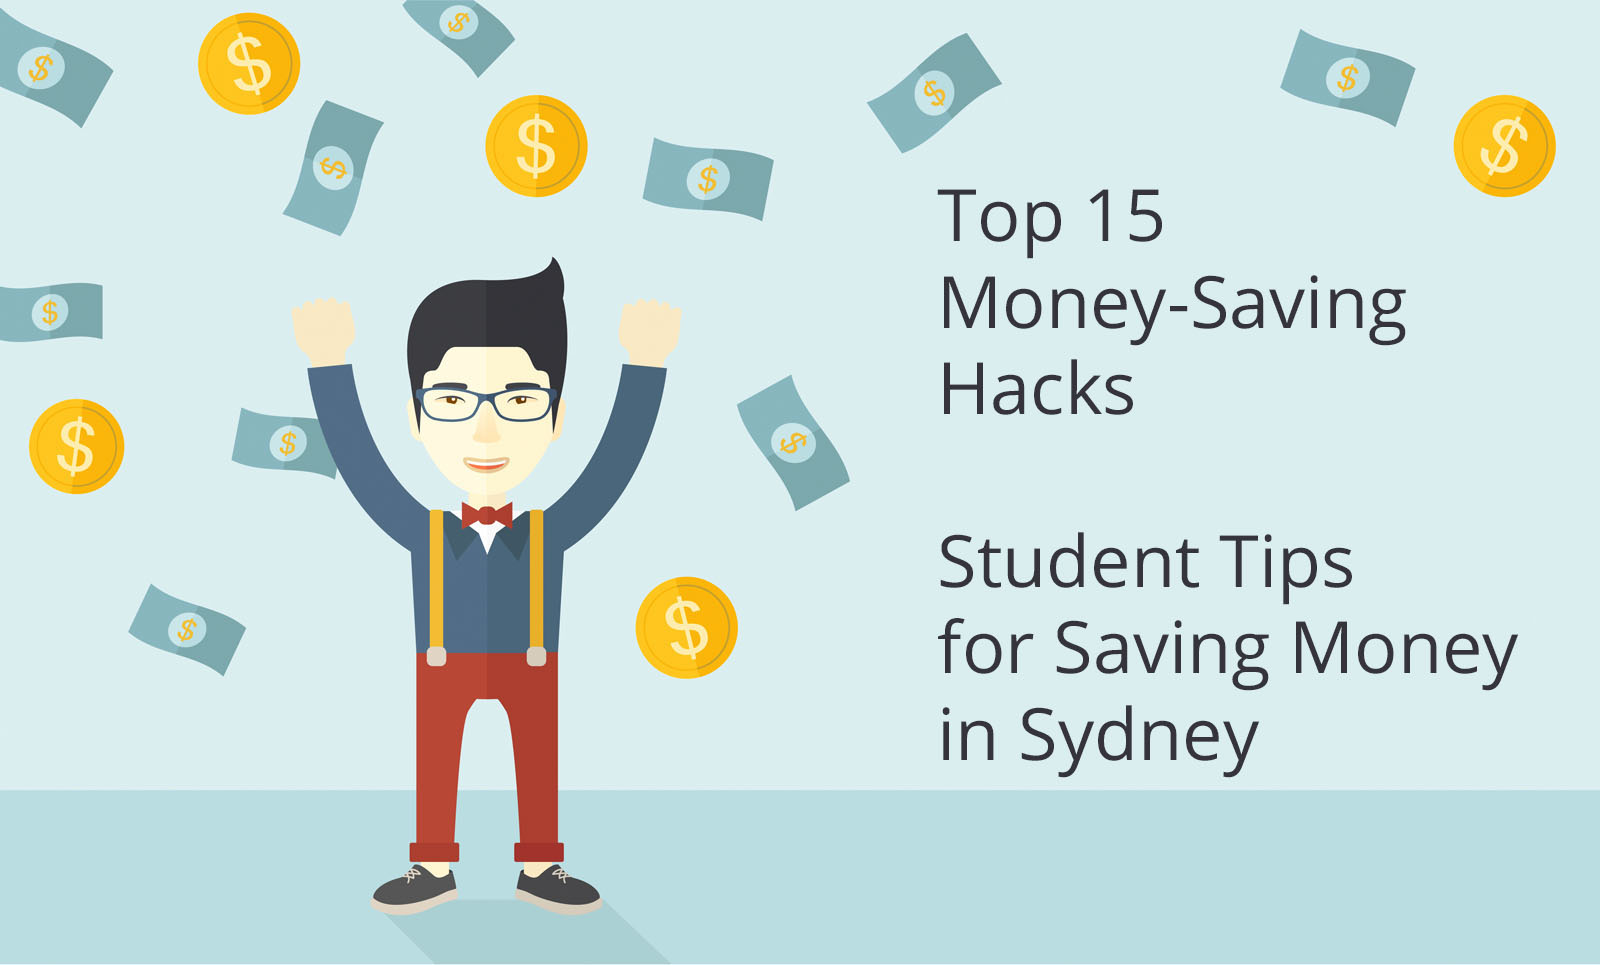 Top 15 Money-Saving Hacks - Student Tips for Saving Money in Sydney:image student-money-saving-tips